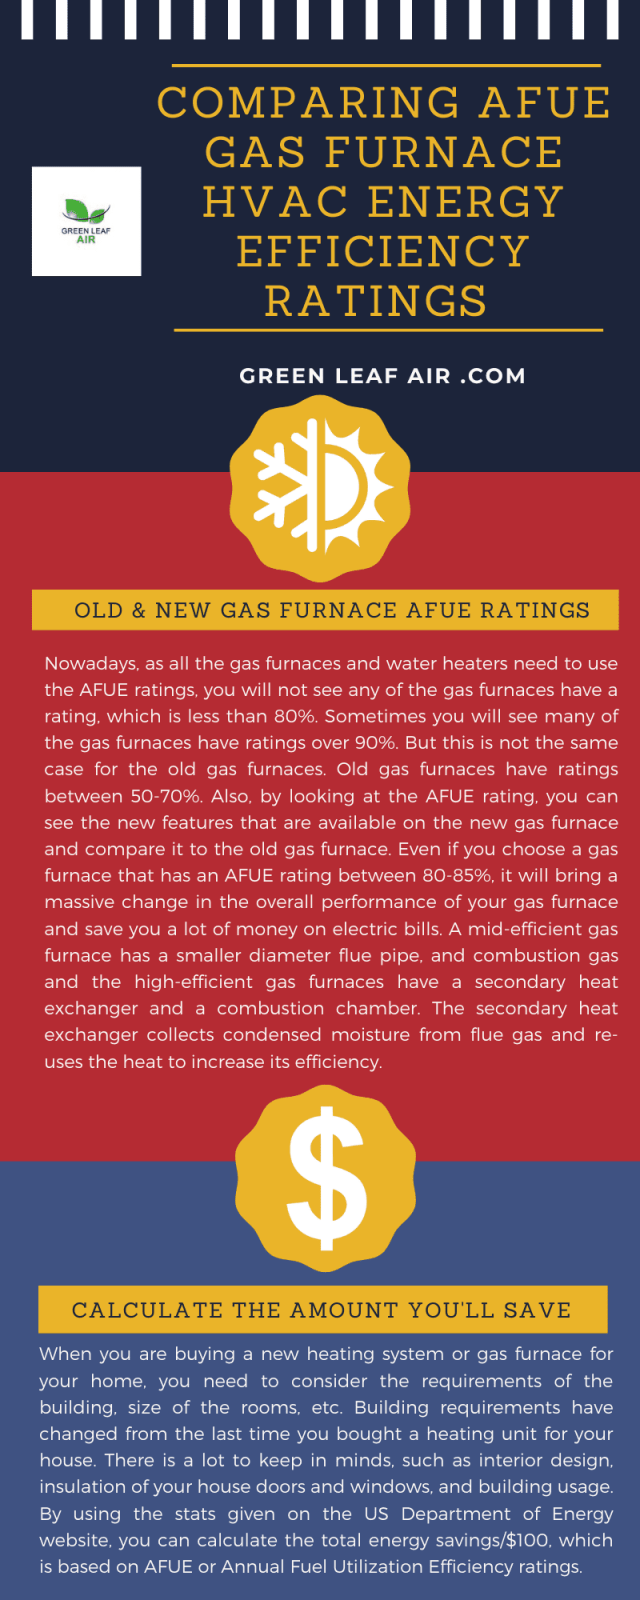 Comparing AFUE Gas Furnace HVAC Energy Efficiency Ratings